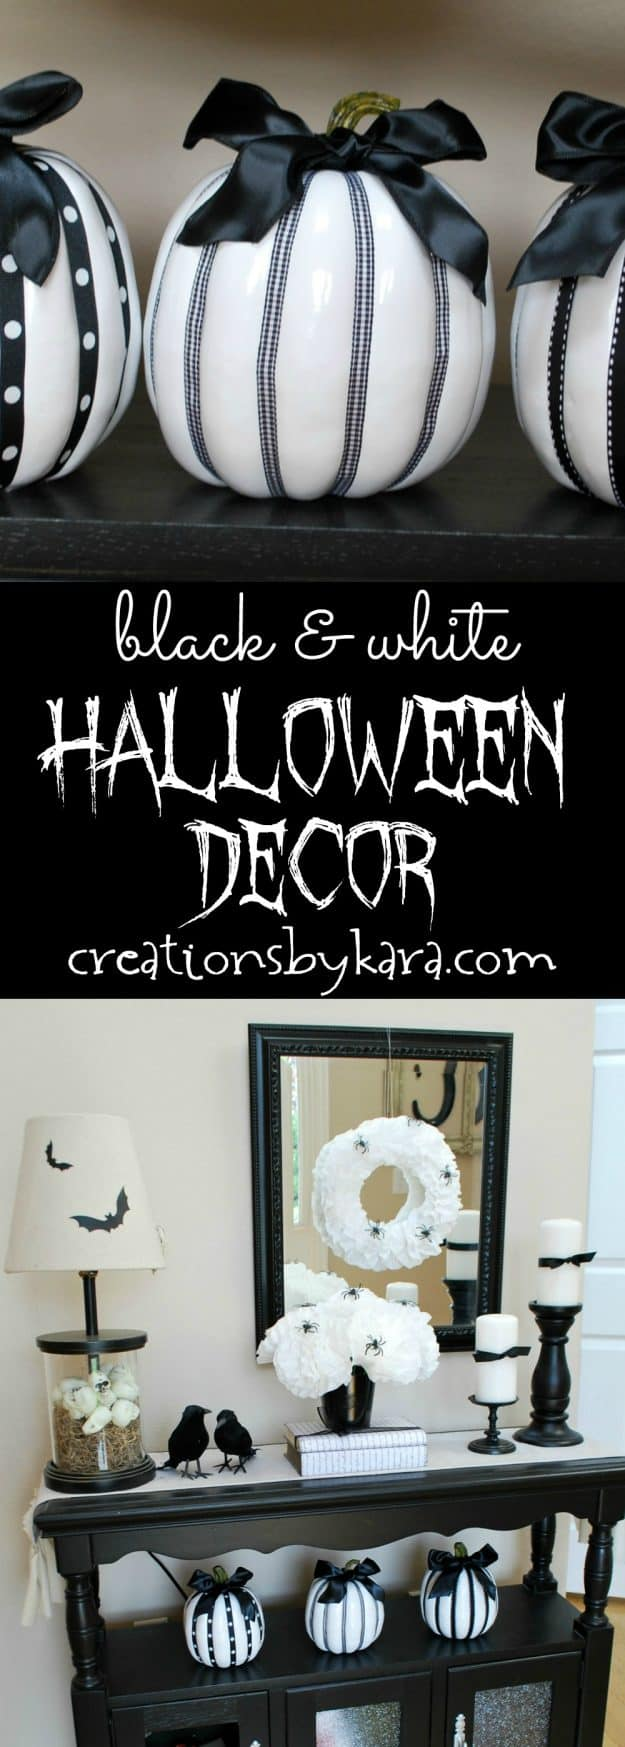 Black and white Halloween decor